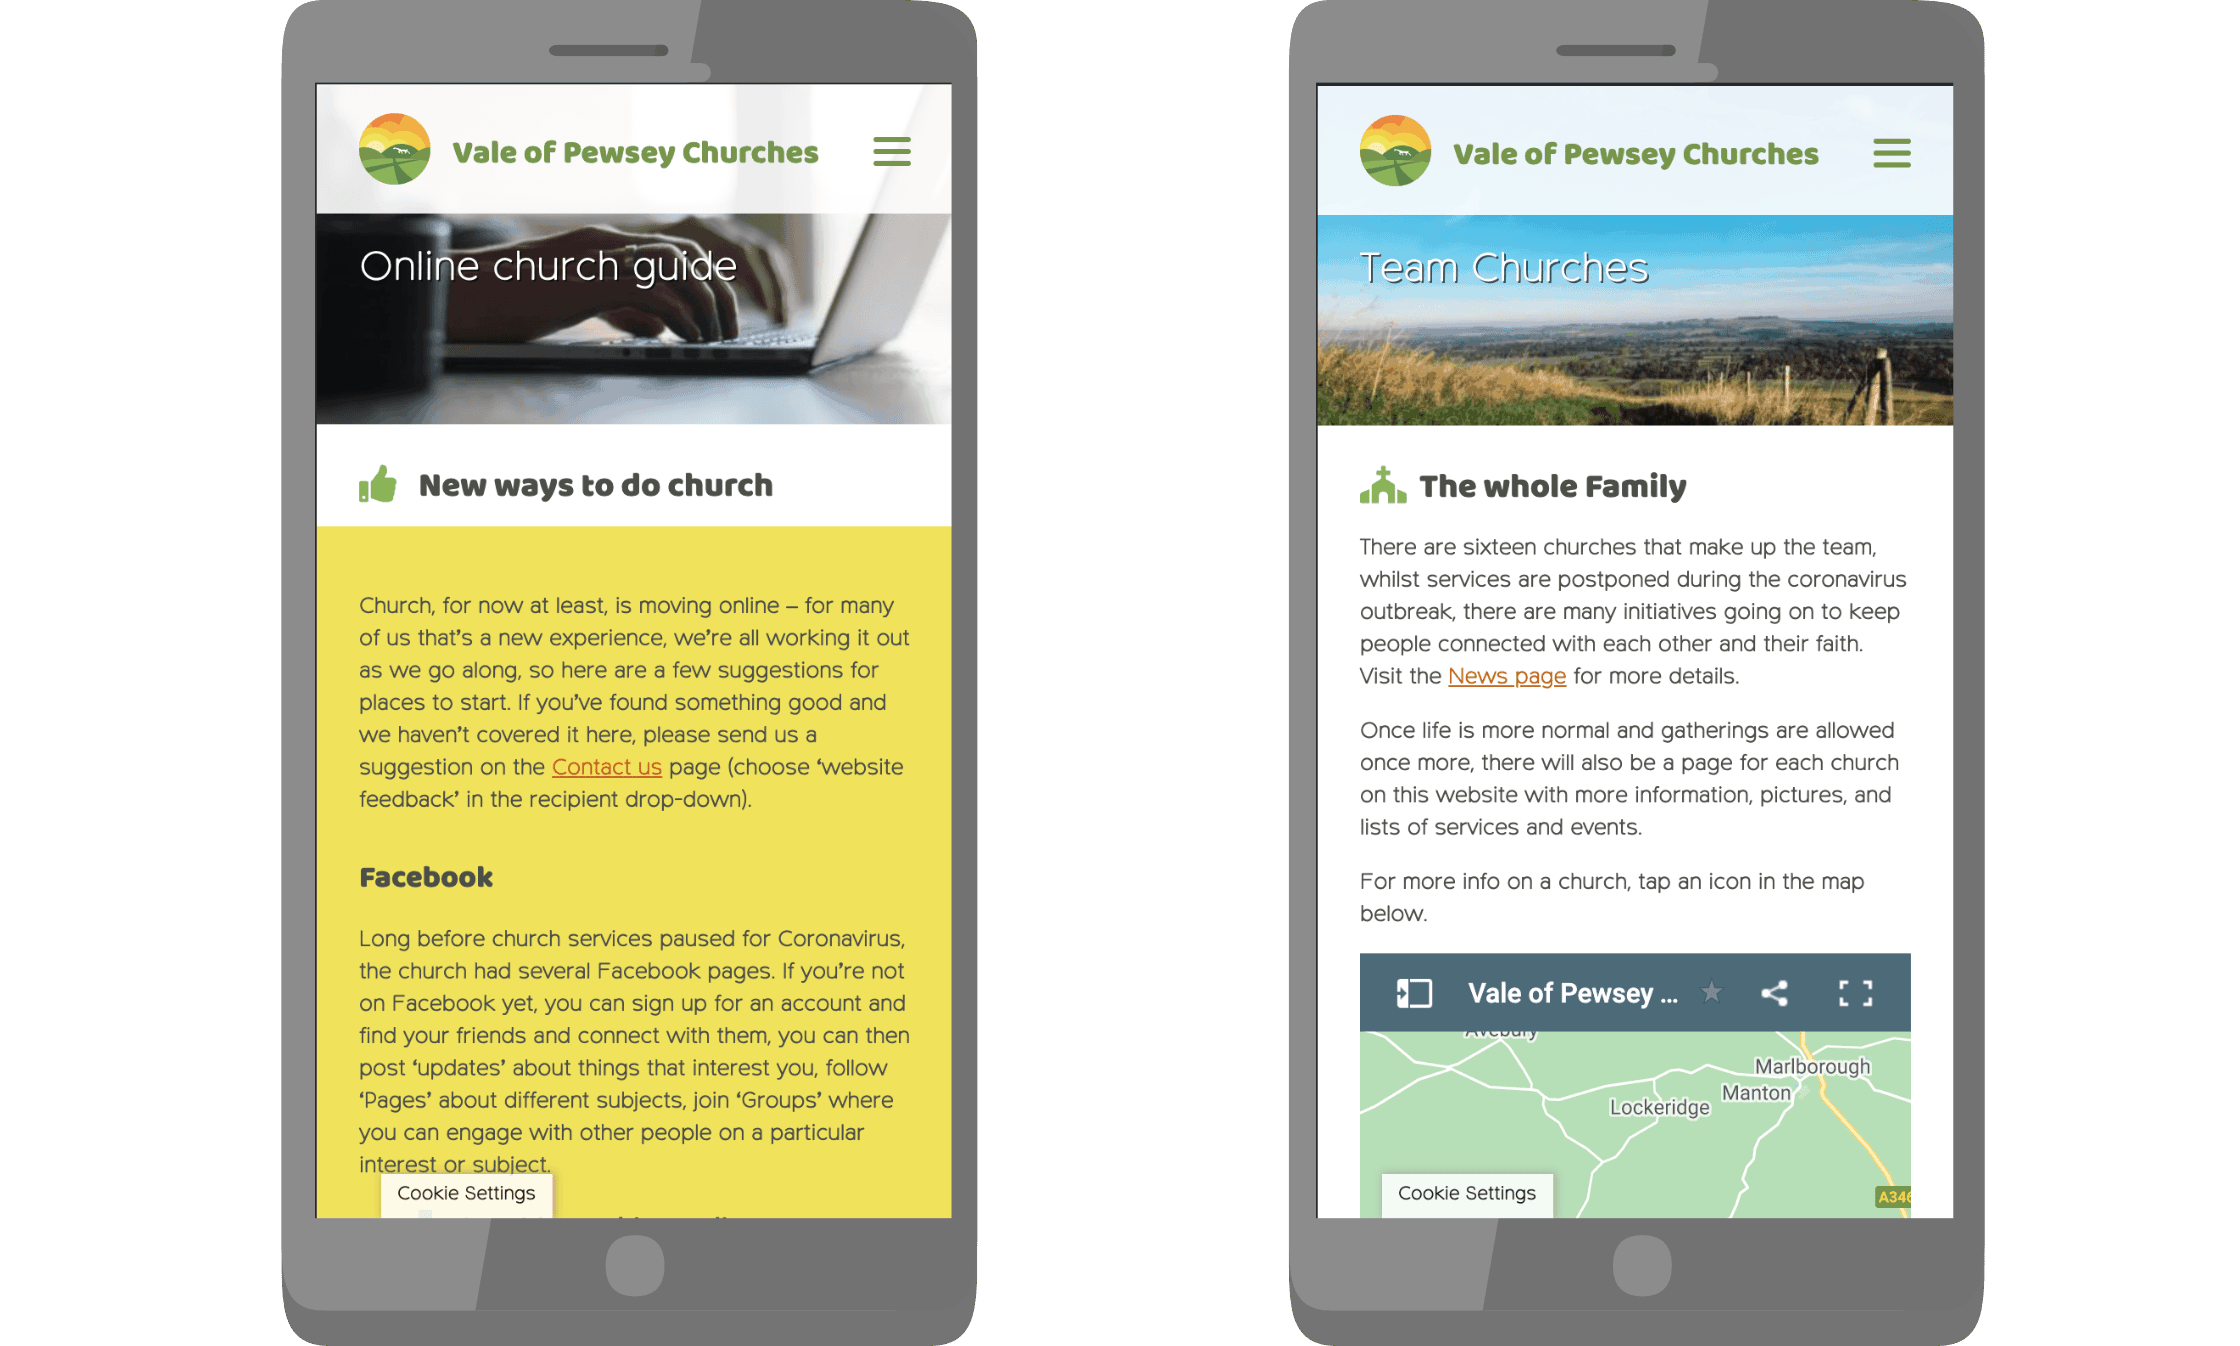 Vale of Pewsey website 'Online Guide' and 'Map' pages on smartphones